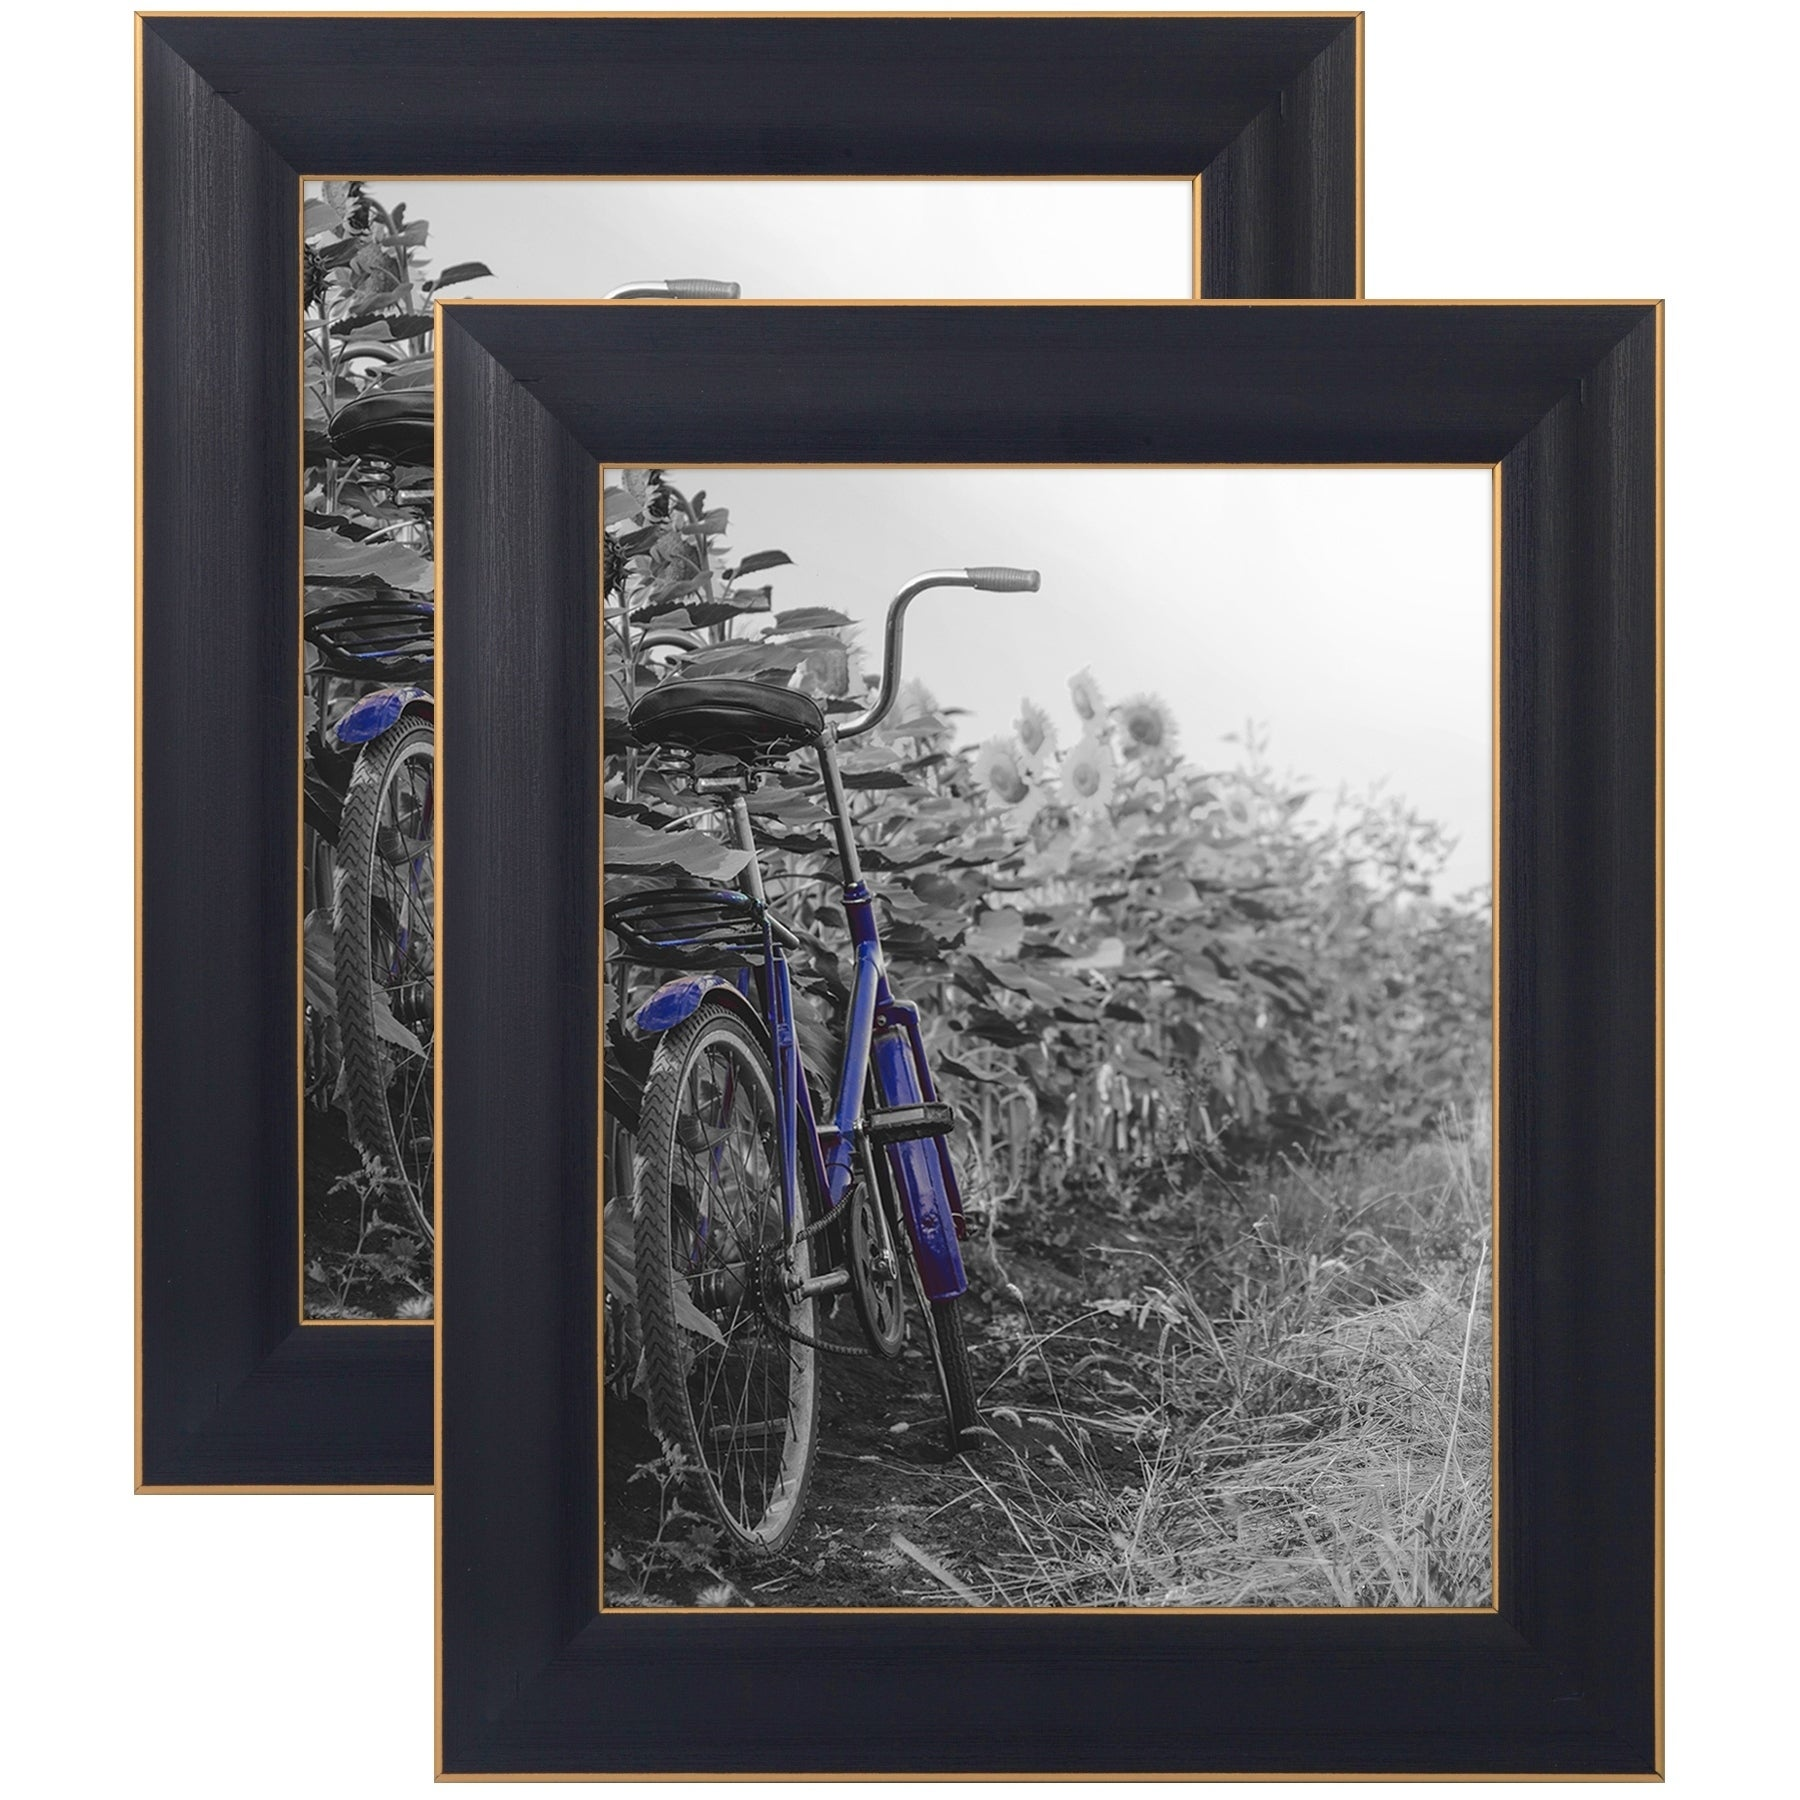 2 Pack 8x10 Rustic Picture Frame Set with Glass// Mat 5x7 Photo for Wall//Tabletop